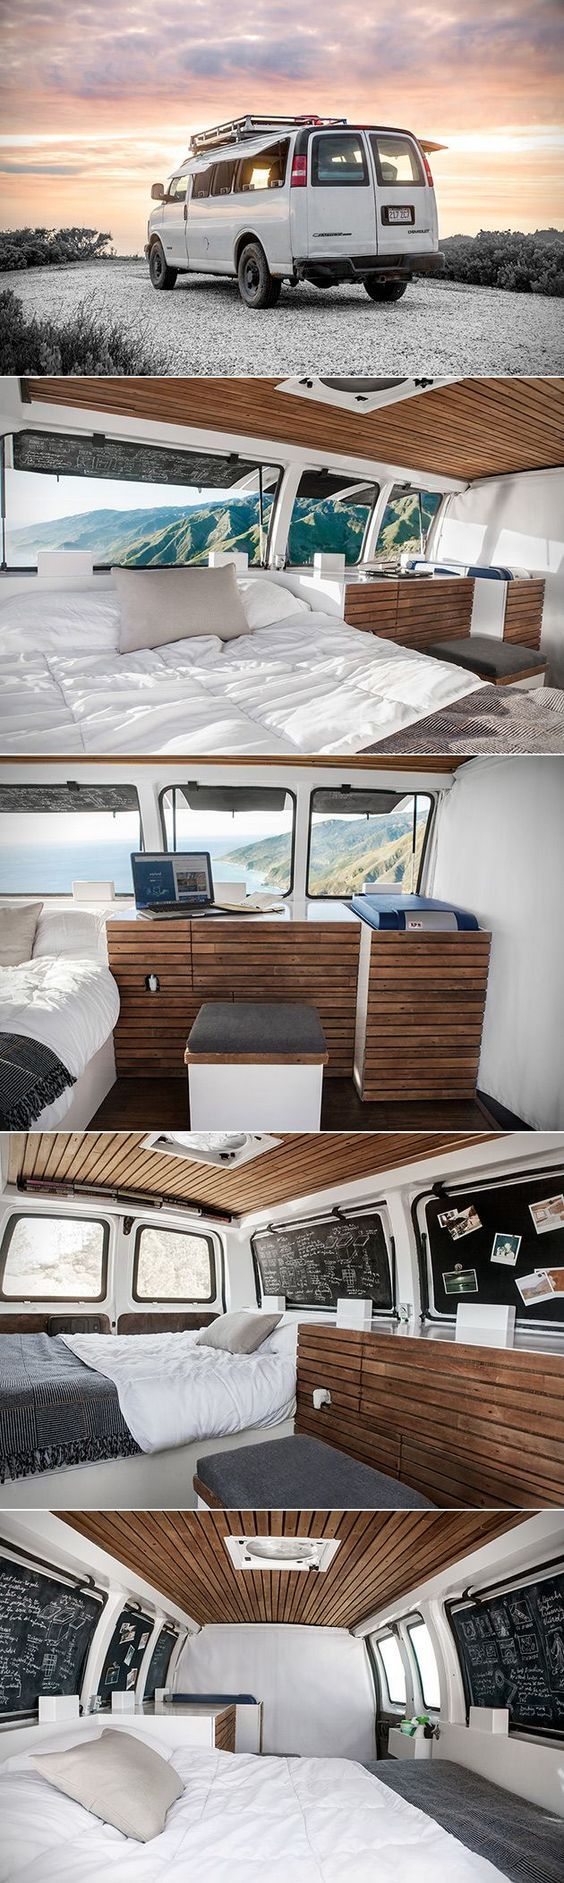 This Aspiring Filmmaker Converted a Used Cargo Van Into a Stylish Living Space #thegreatoutdoors